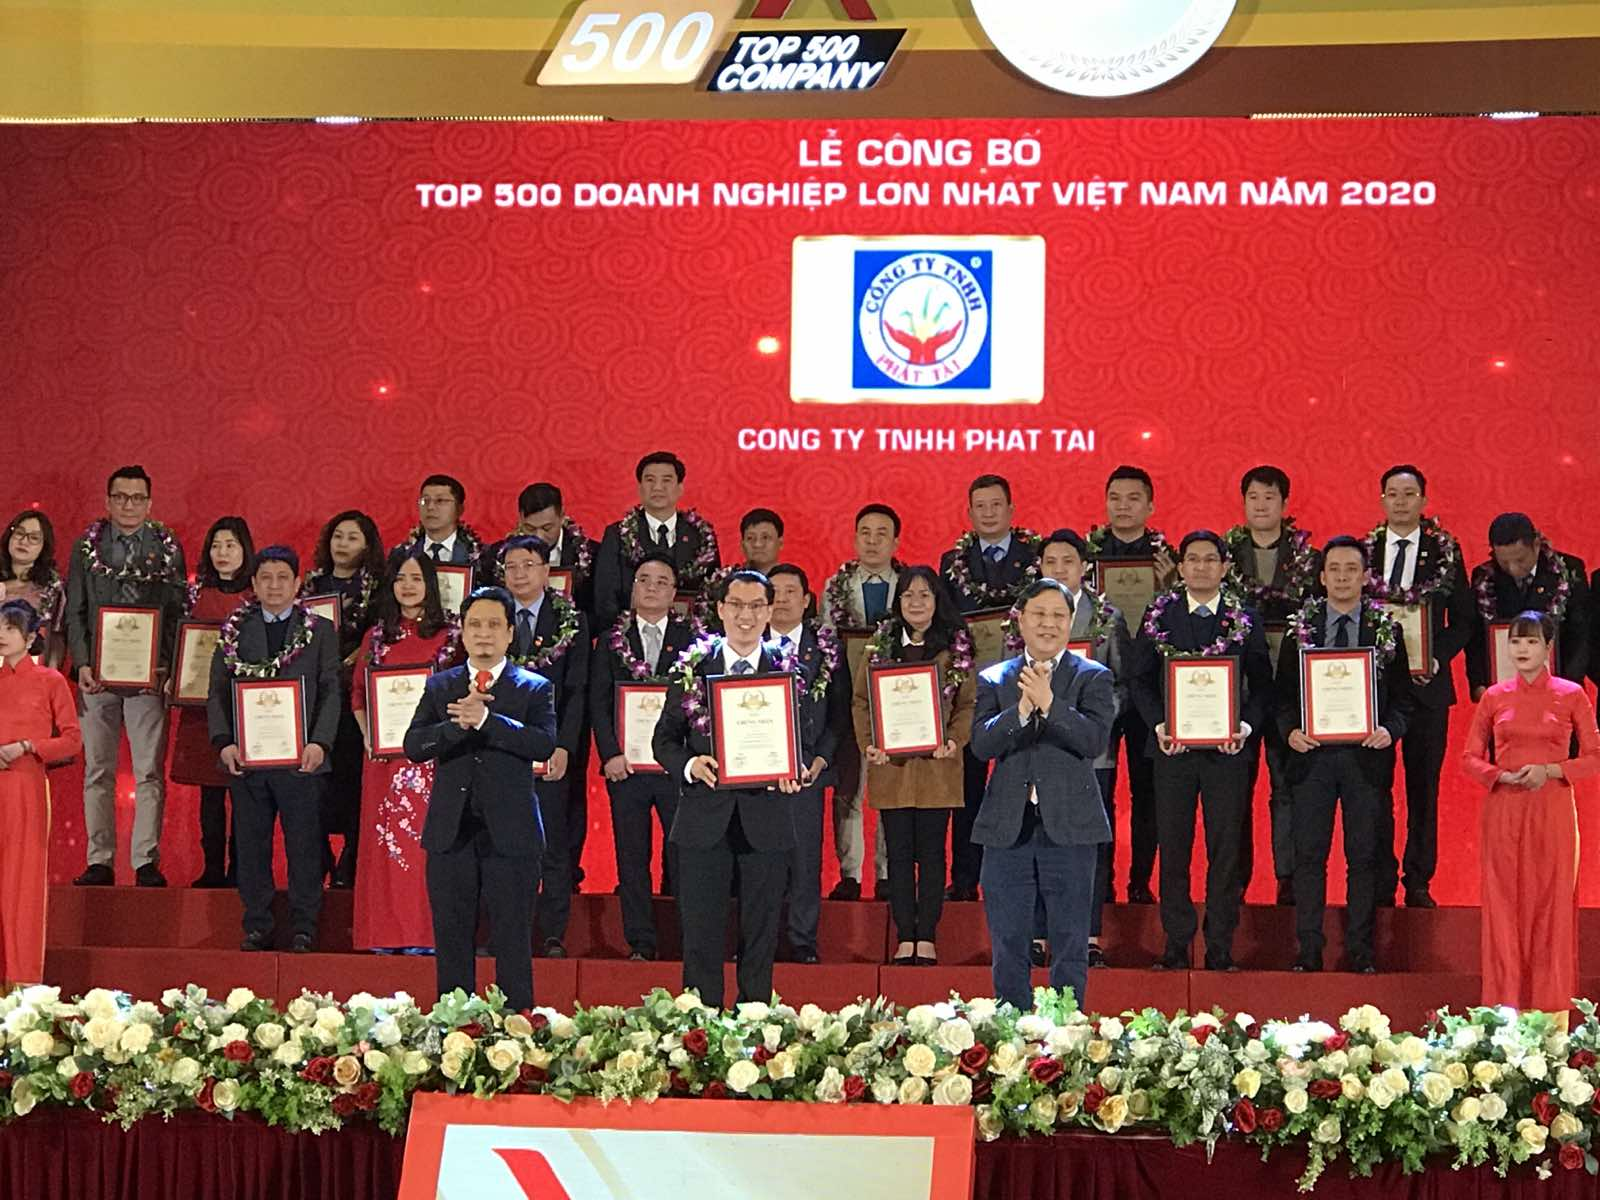 PHAT TAI LIMITED COMPANY IS IN TOP 500 LARGEST ENTERPRISES IN VIETNAM IN 2020